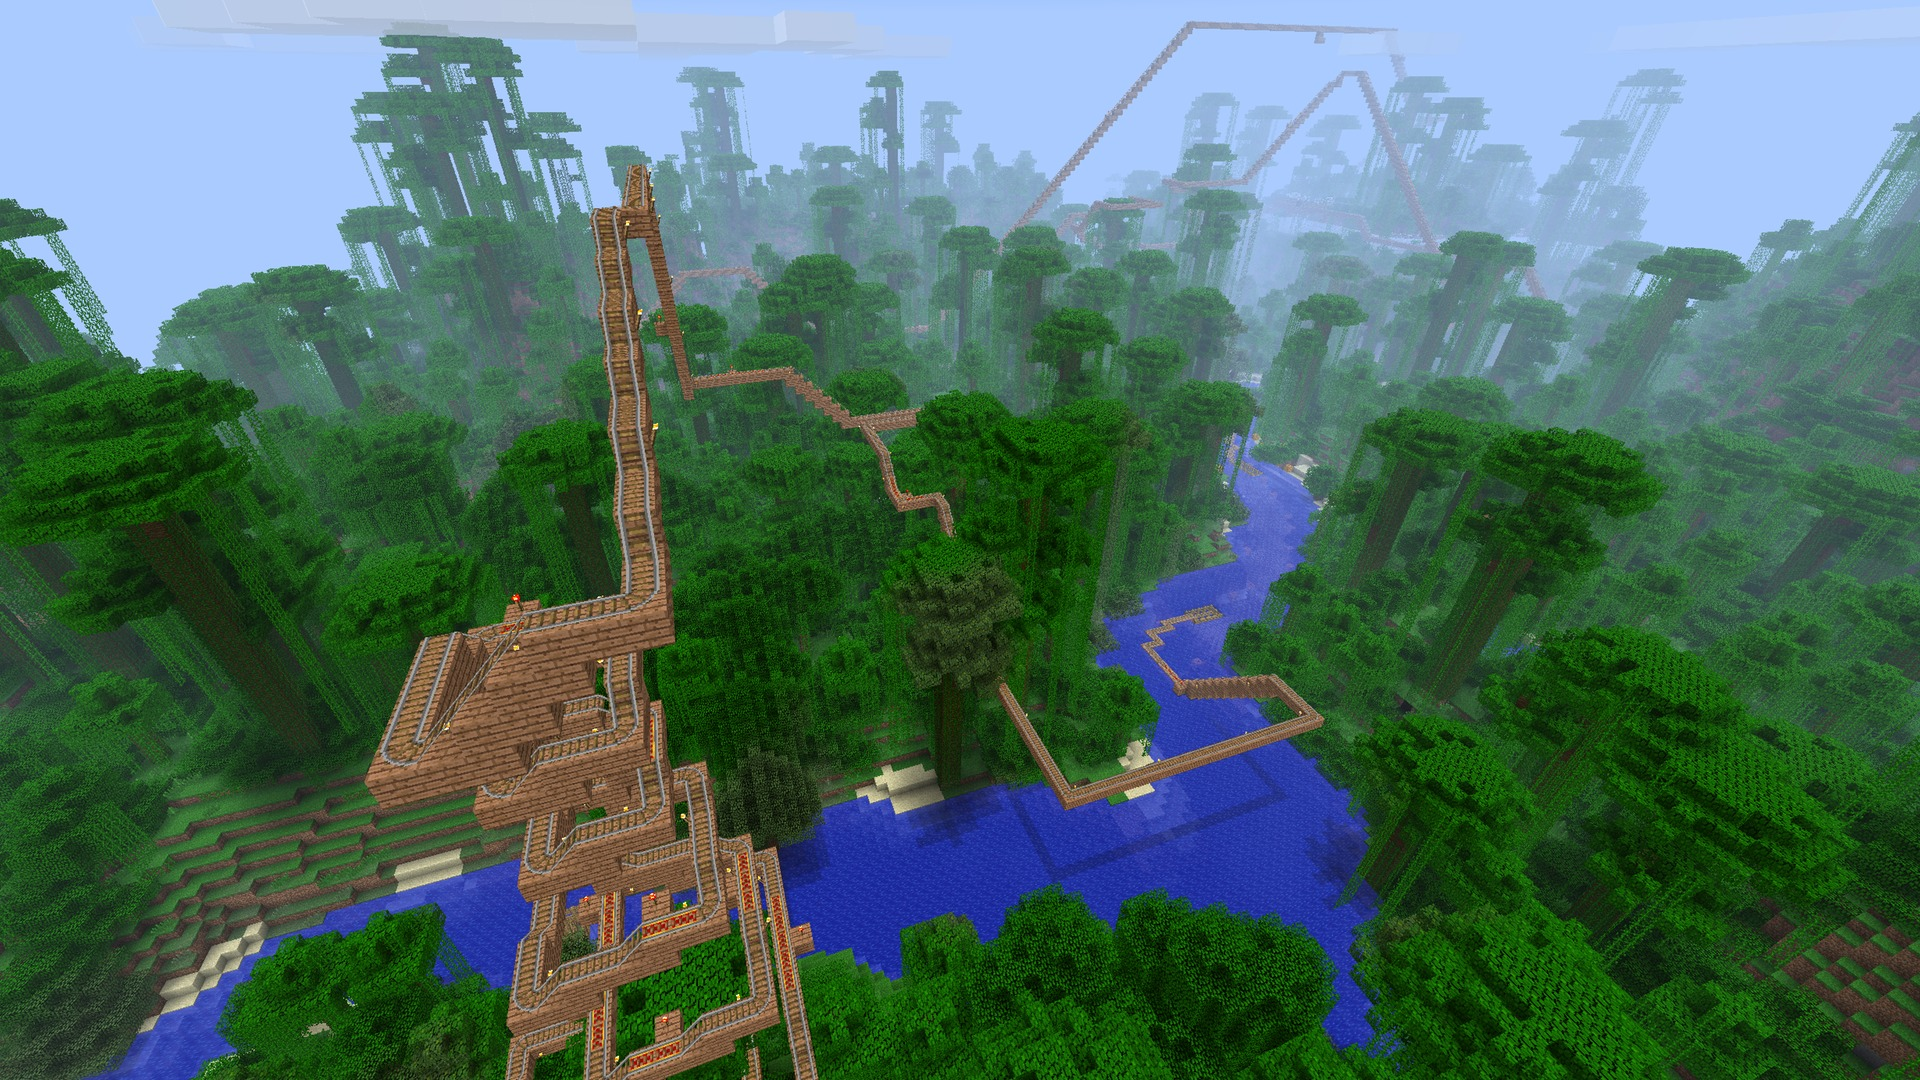 Arsian FoO's jungle coaster stretching off into the hazy distance. You could be riding something like this right now if you were faster at setting up a server.